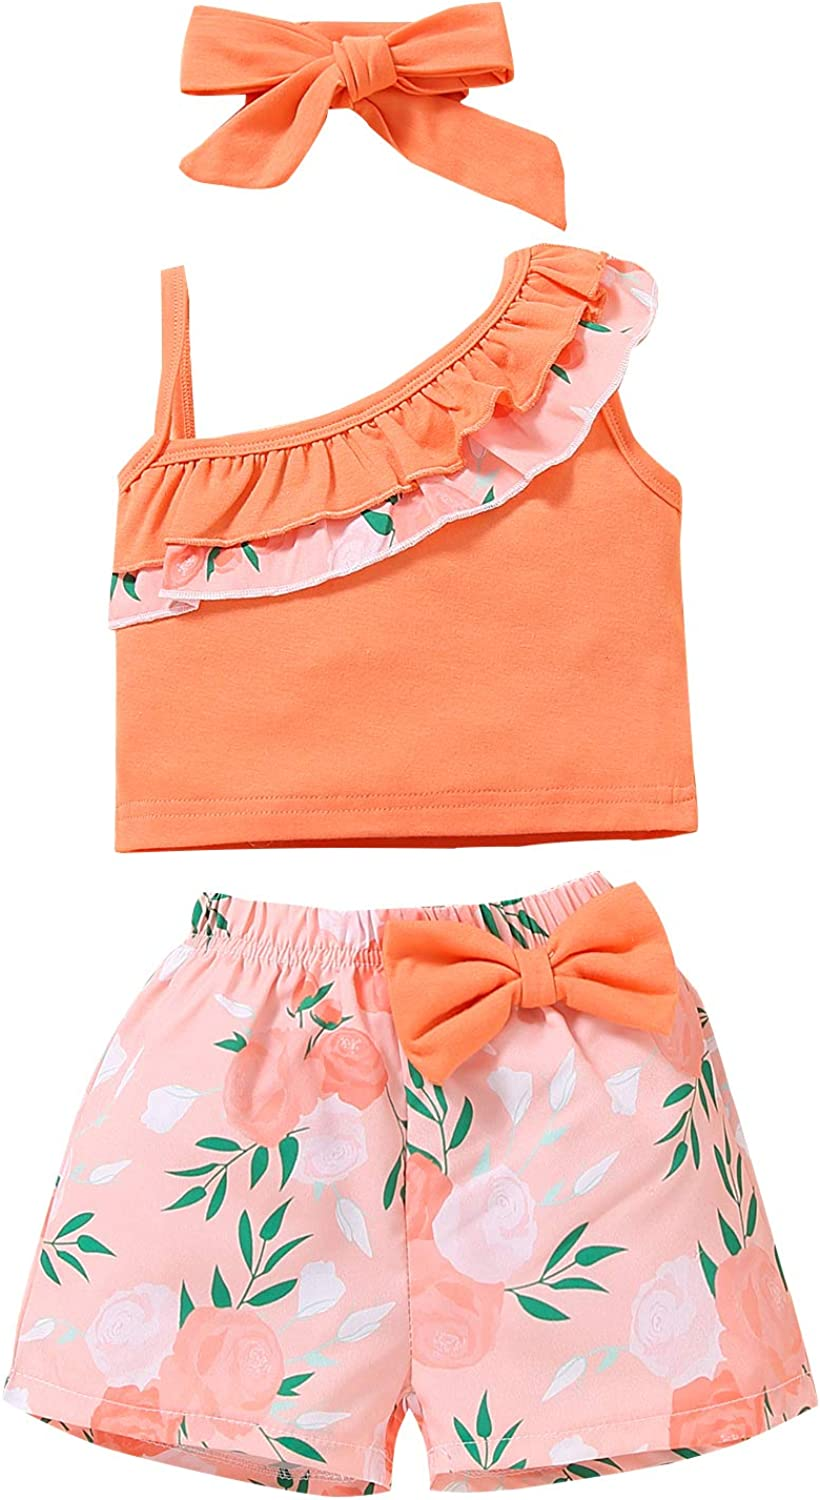 Toddler Baby Girl Clothes Outfits Sleeveless Oblique Shoulder Tops Floral Shorts Little Girl Summer Clothes Set